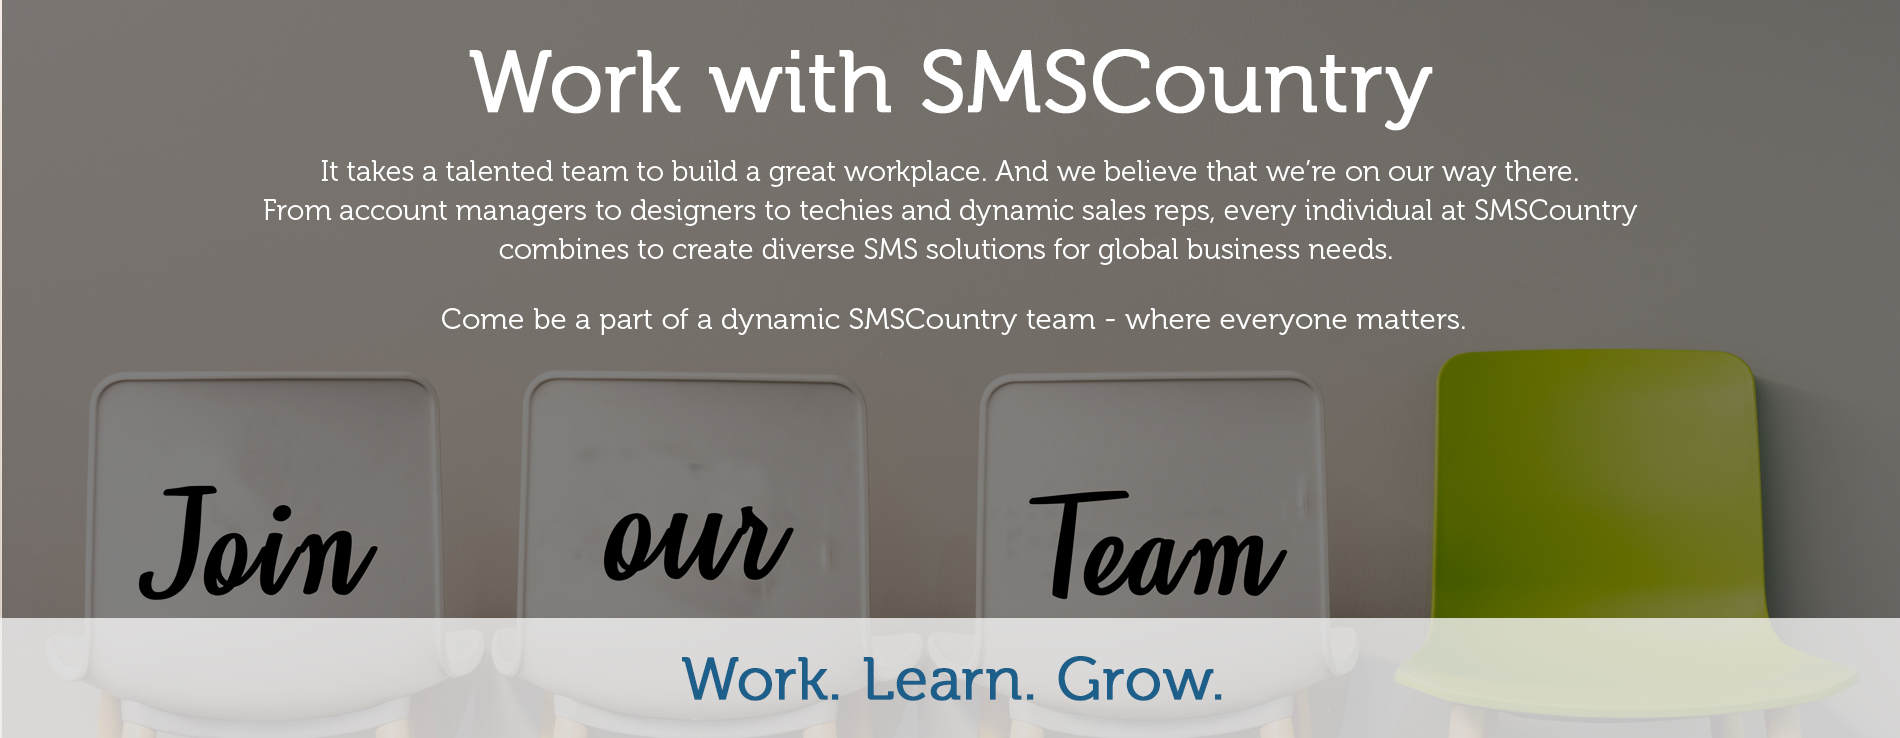 SMSCountryountry-Careers